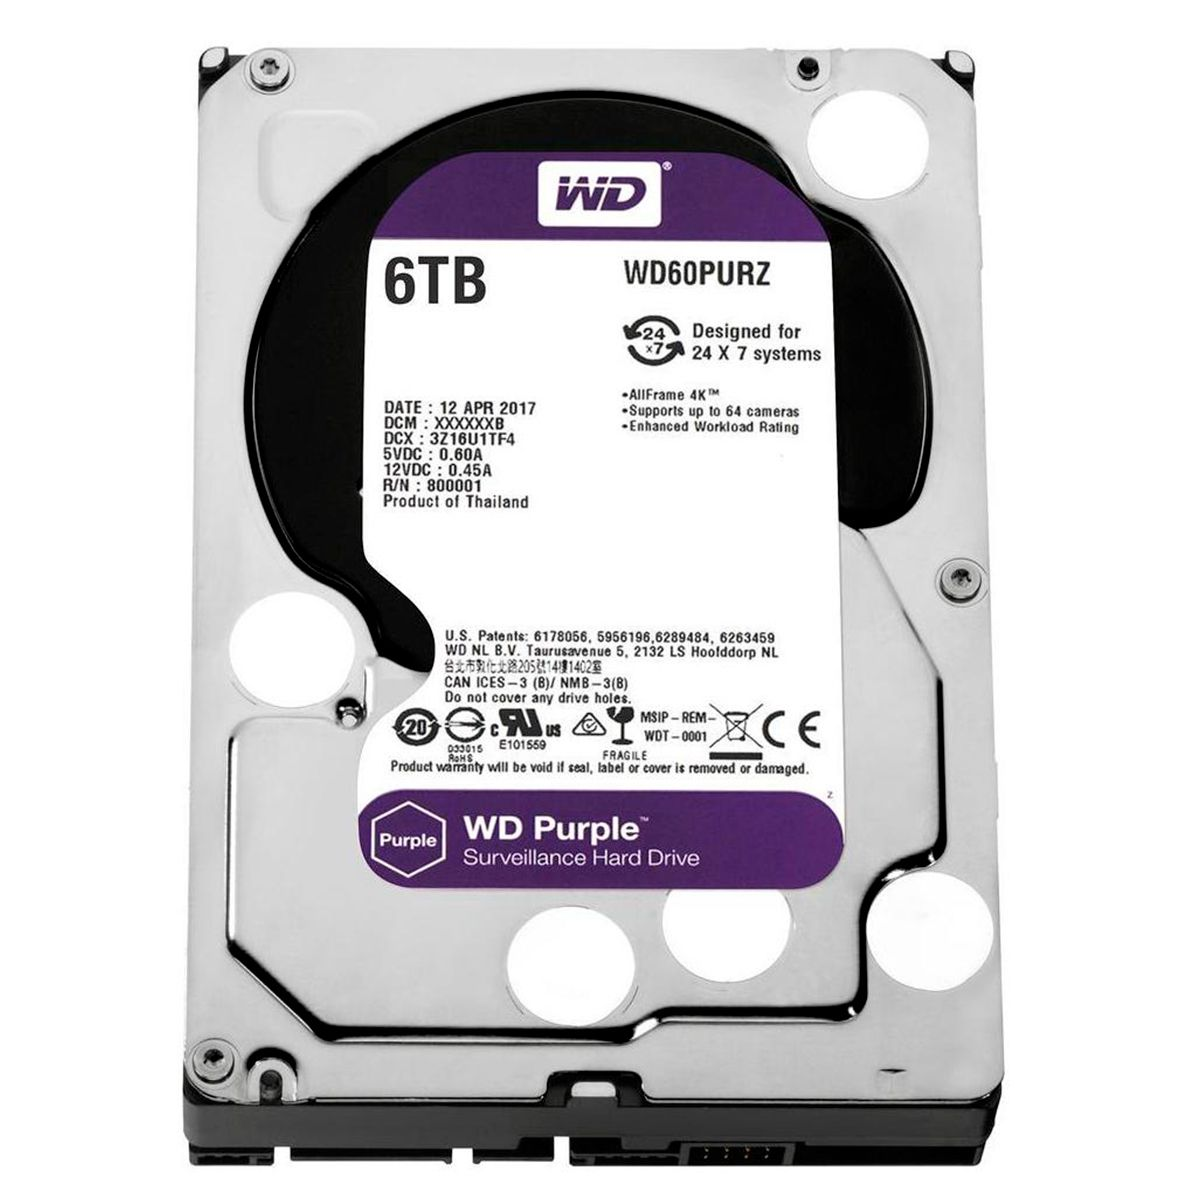 HD Interno WD Purple 6TB Surveillance SATA III 6GB/s 5400 RPM WD60PURZ  - Tudo Forte